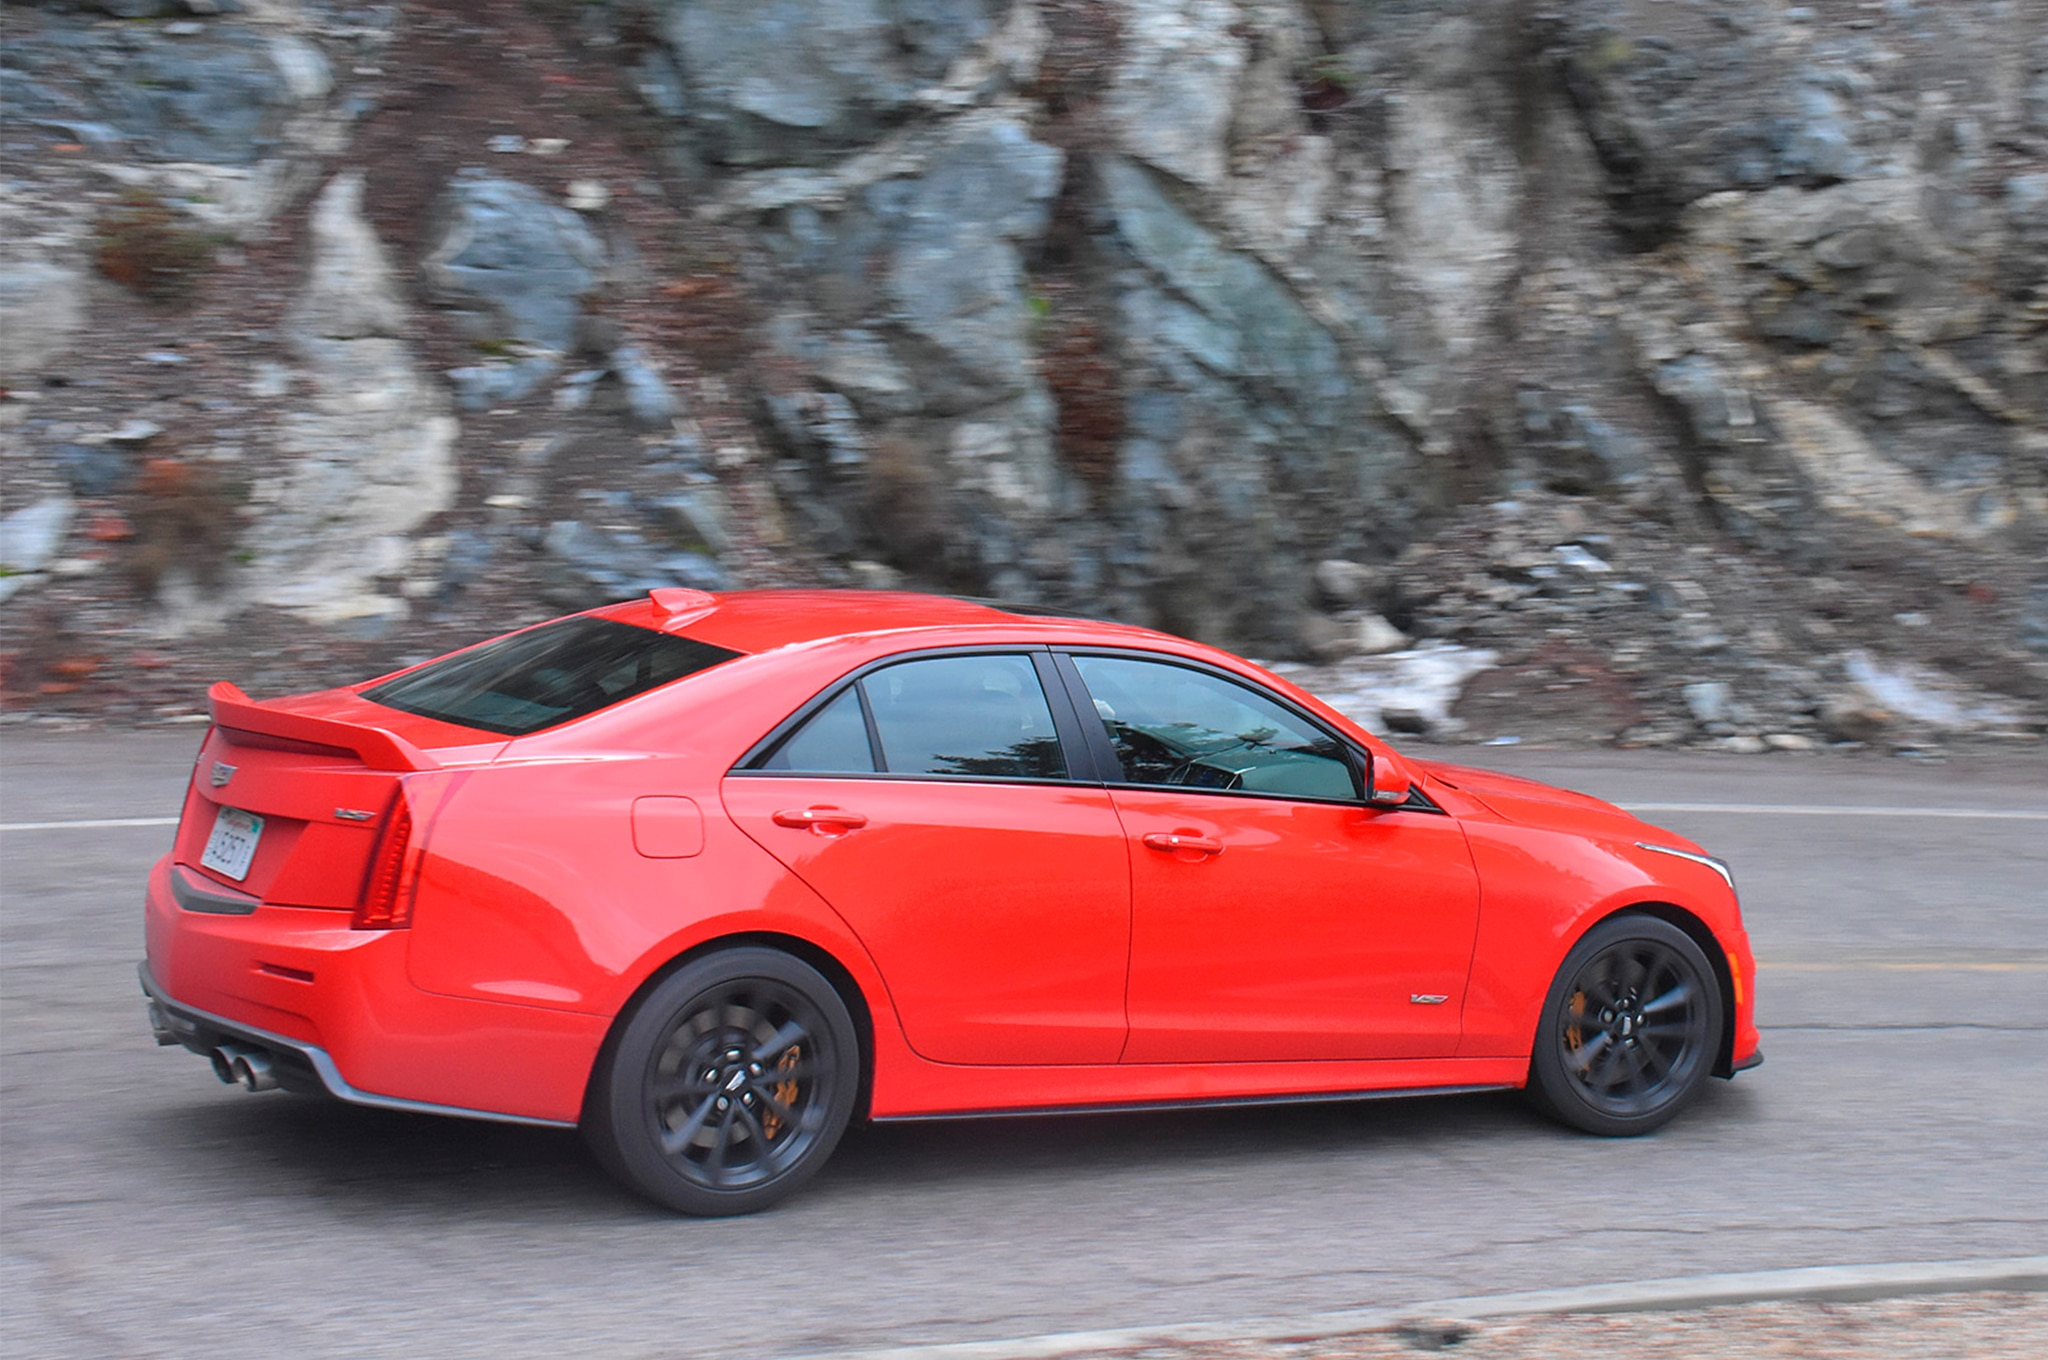 Cadillac Ats 3 6 Best Car Update 2019 2020 By Thestellarcafe